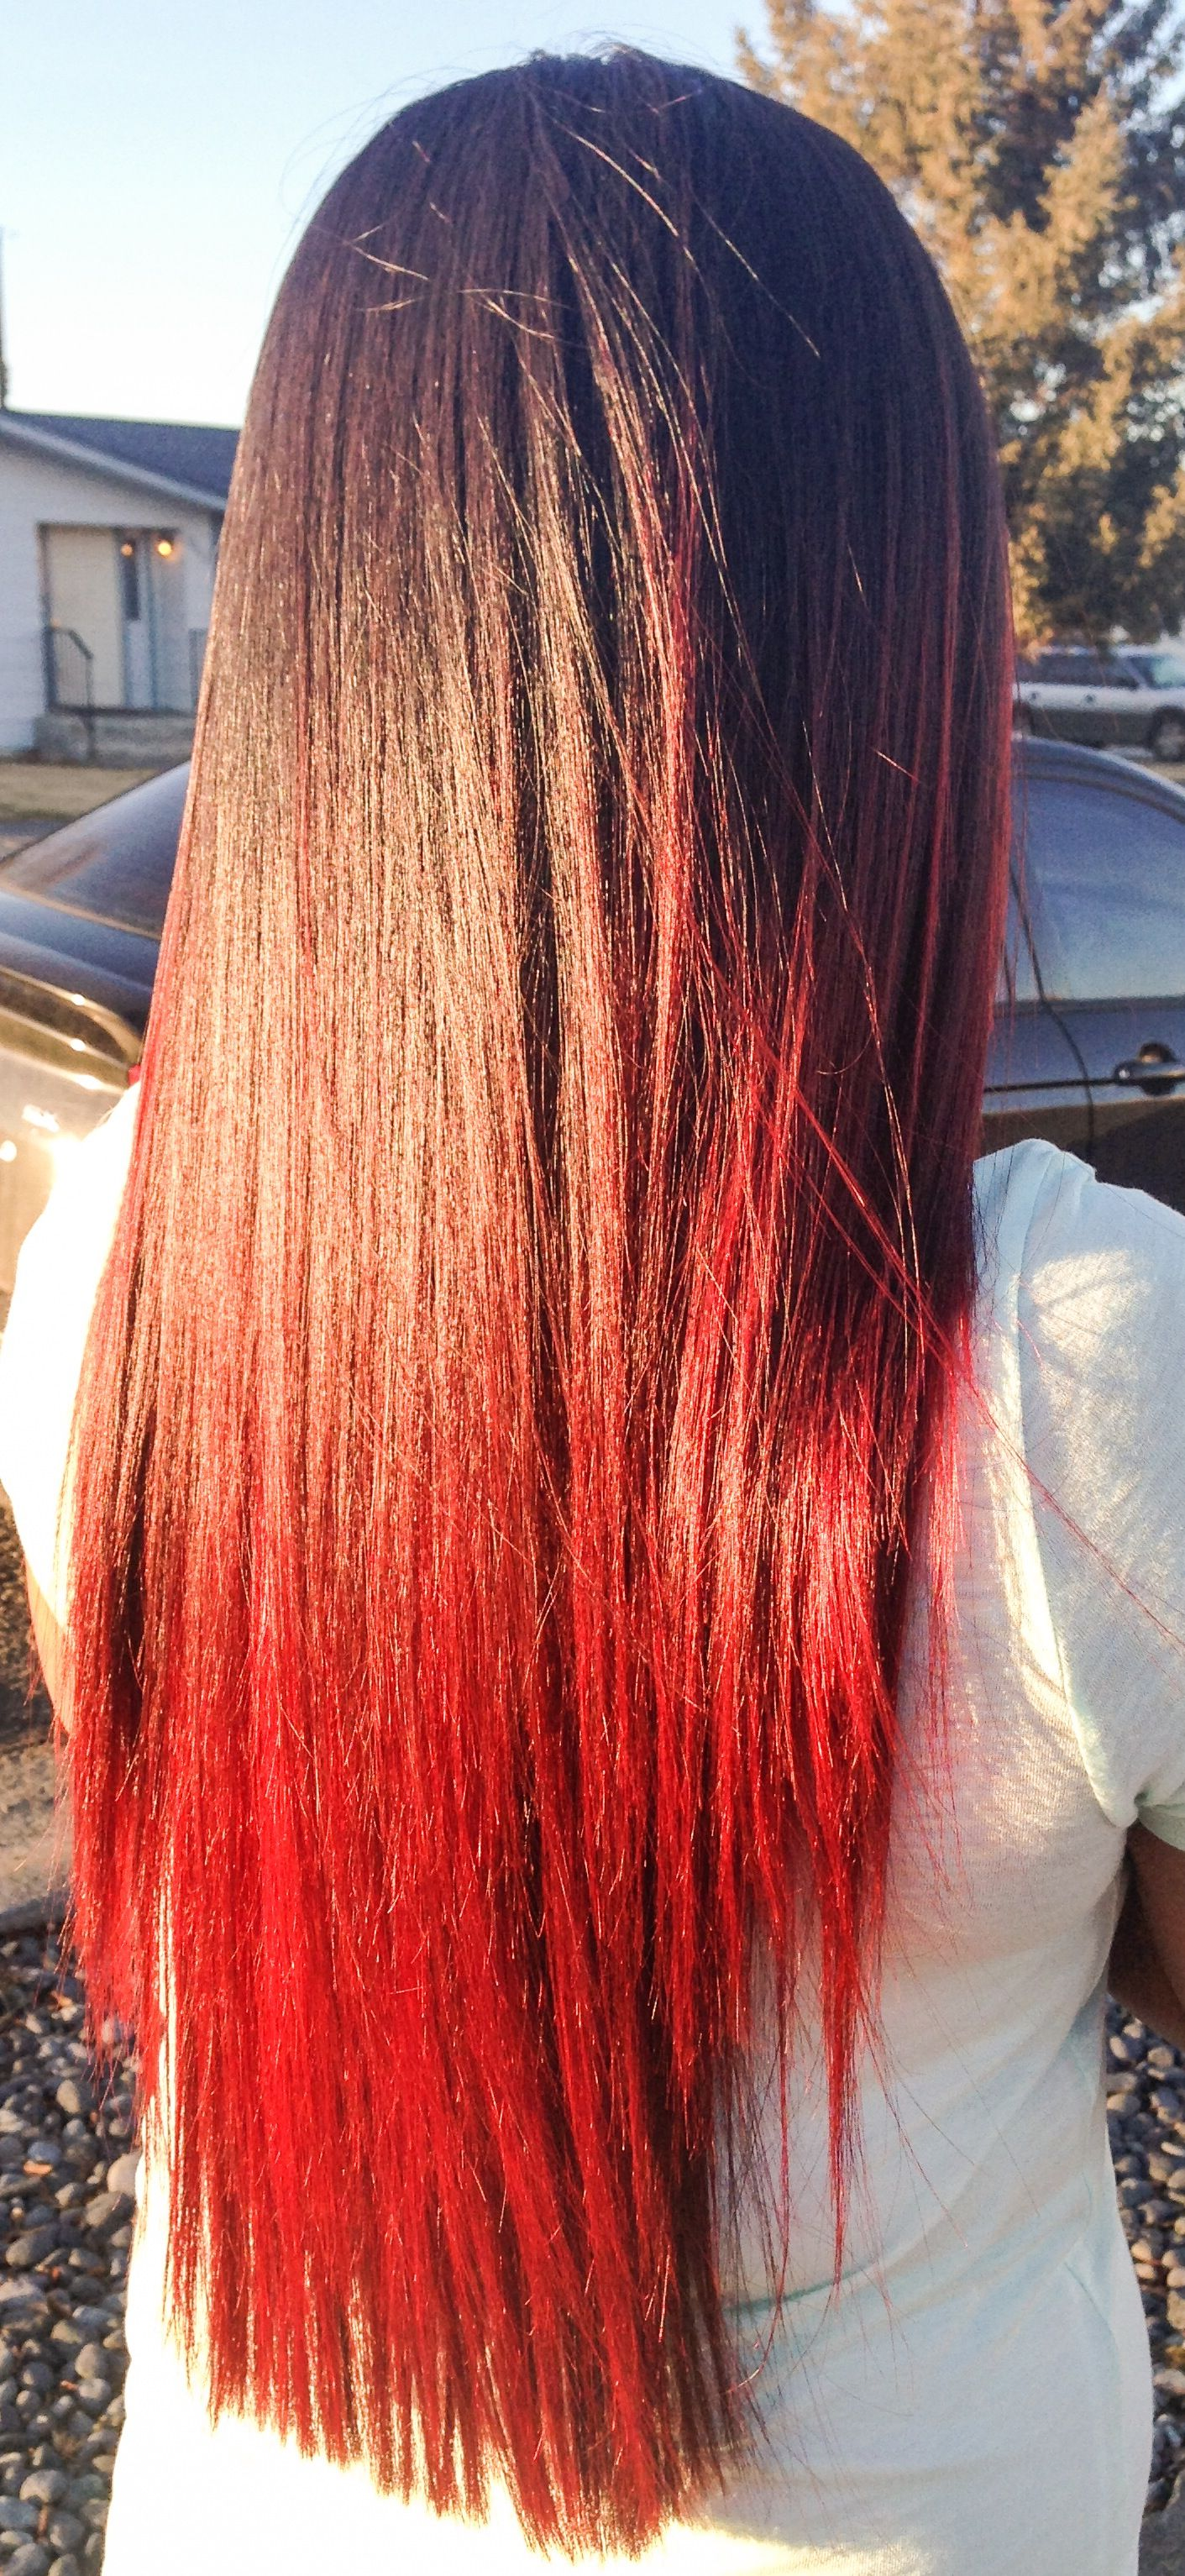 Pin By Kristen Quenneville On Everything Hair Red Hair Tips Red Brown Hair Brown Hair Red Tips